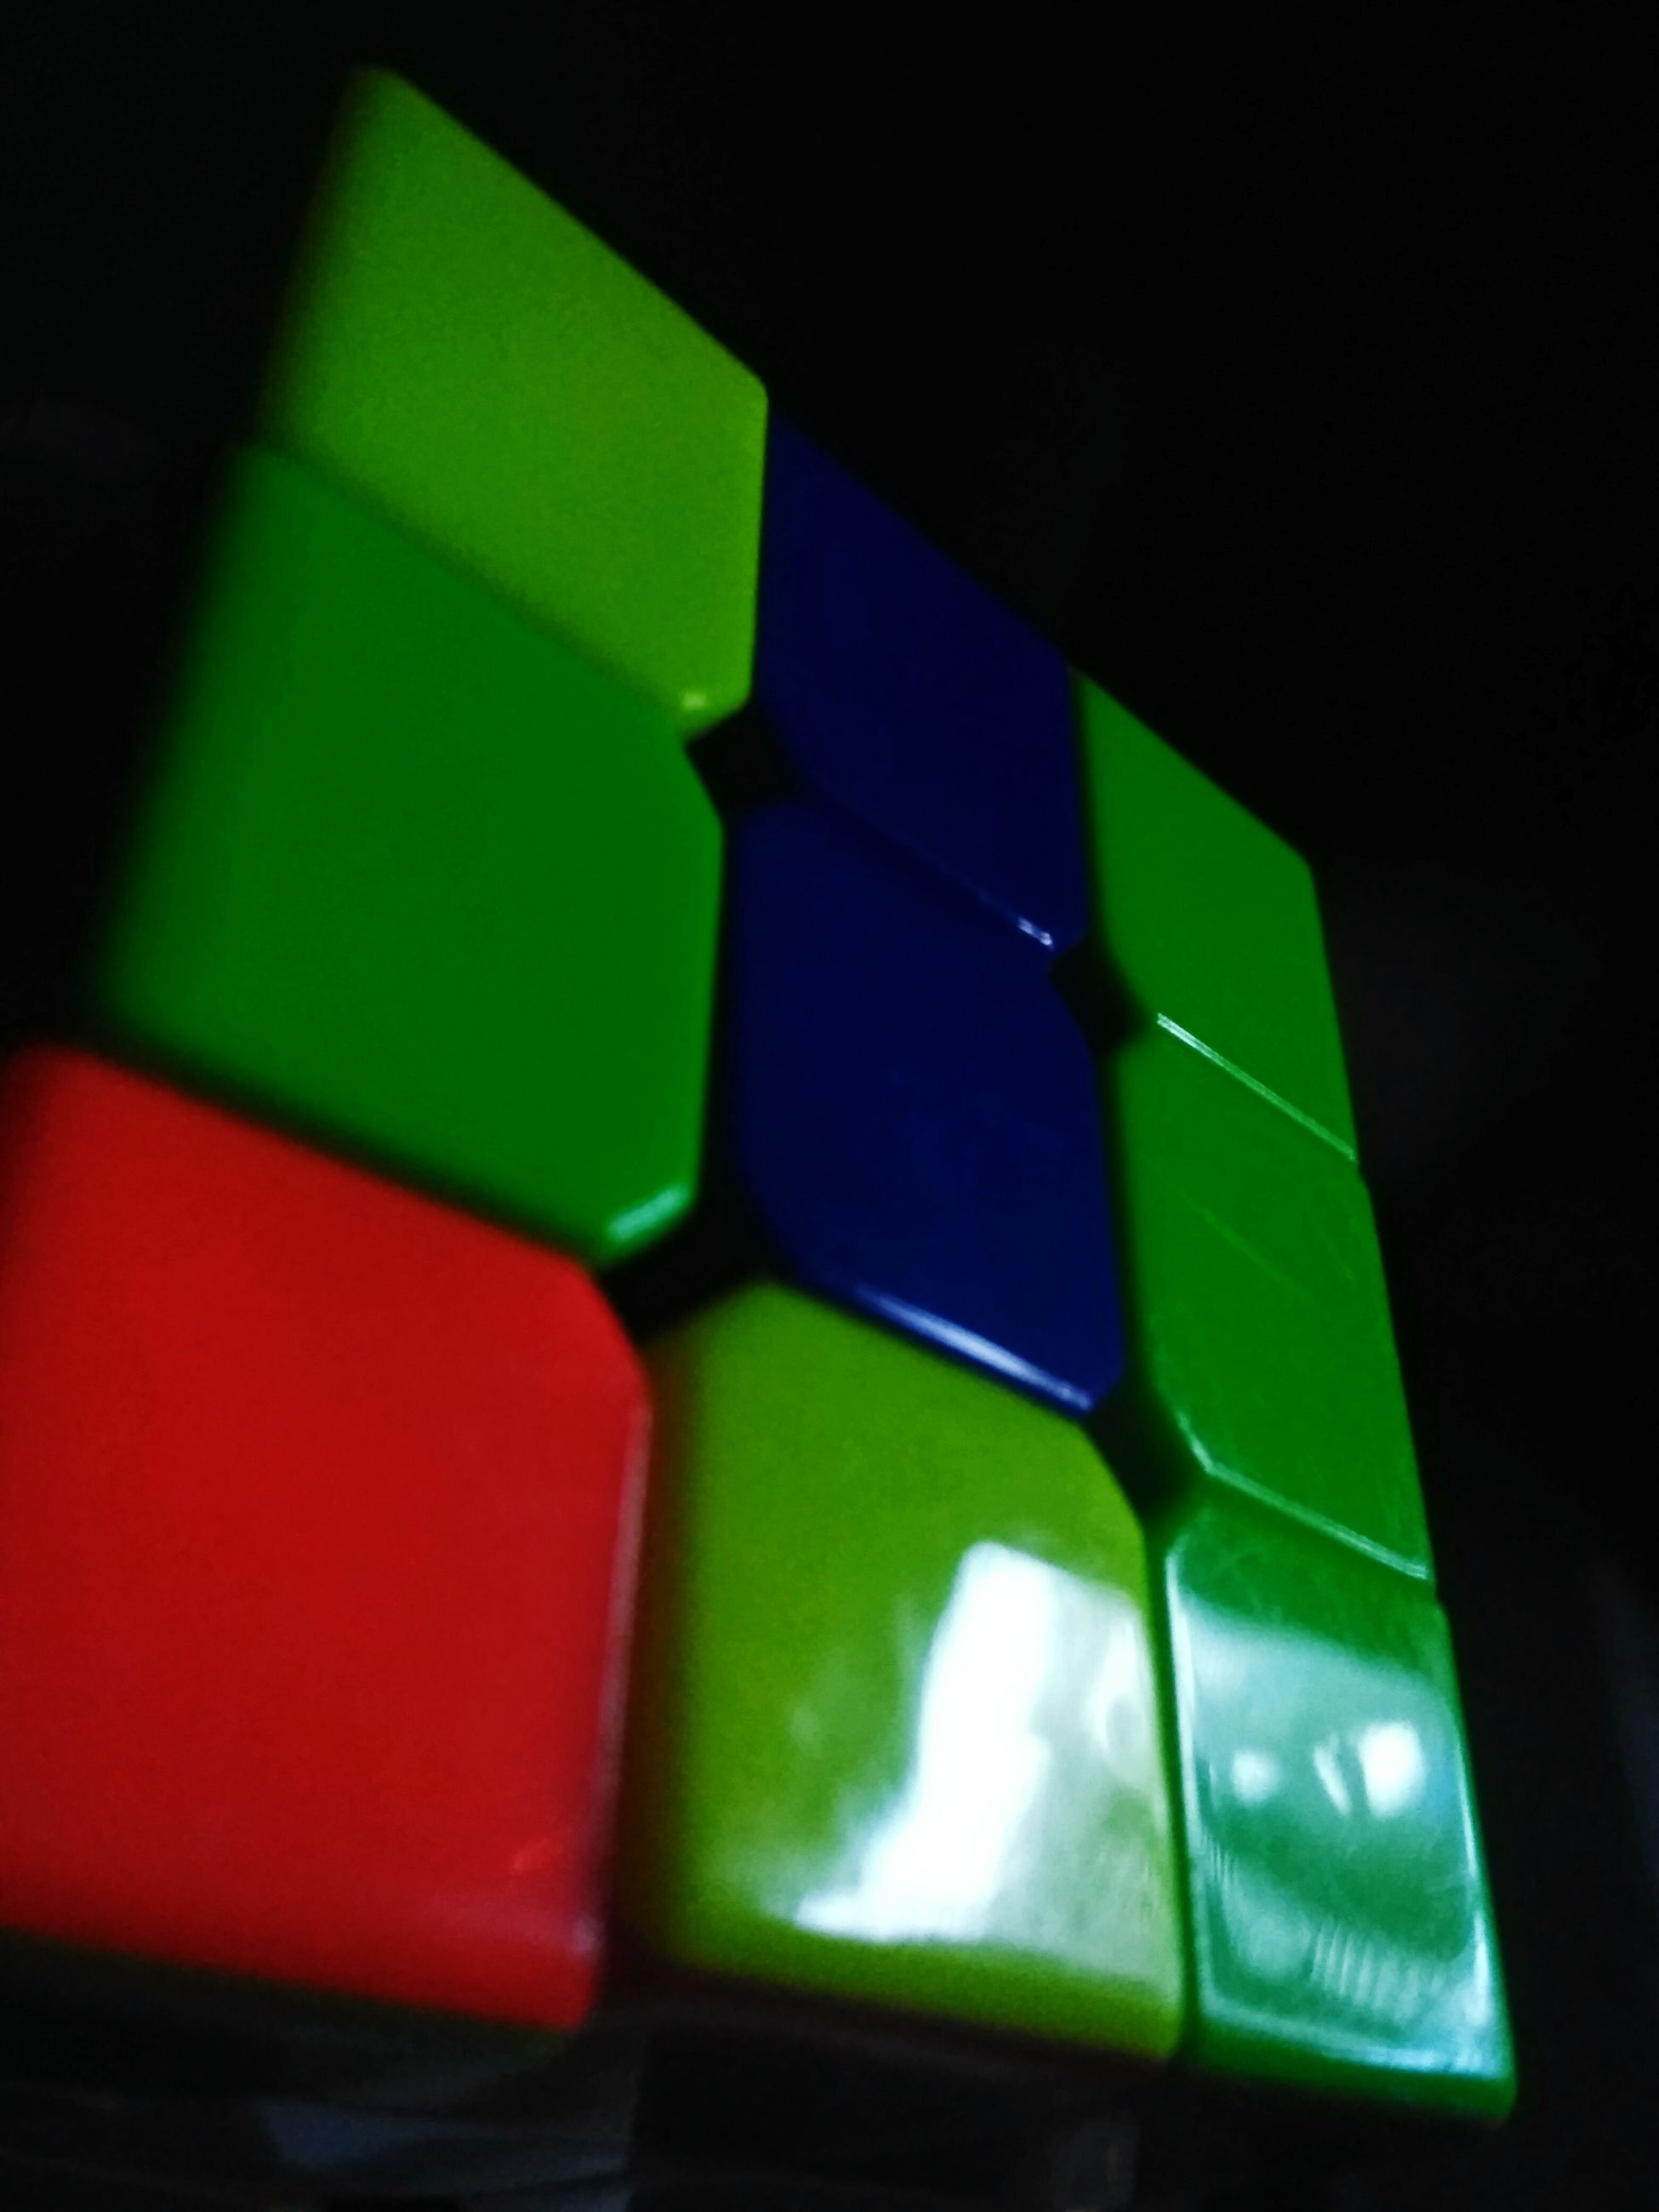 green color, multi colored, toy block, indoors, illuminated, no people, close-up, alphabet, red, technology, black background, day